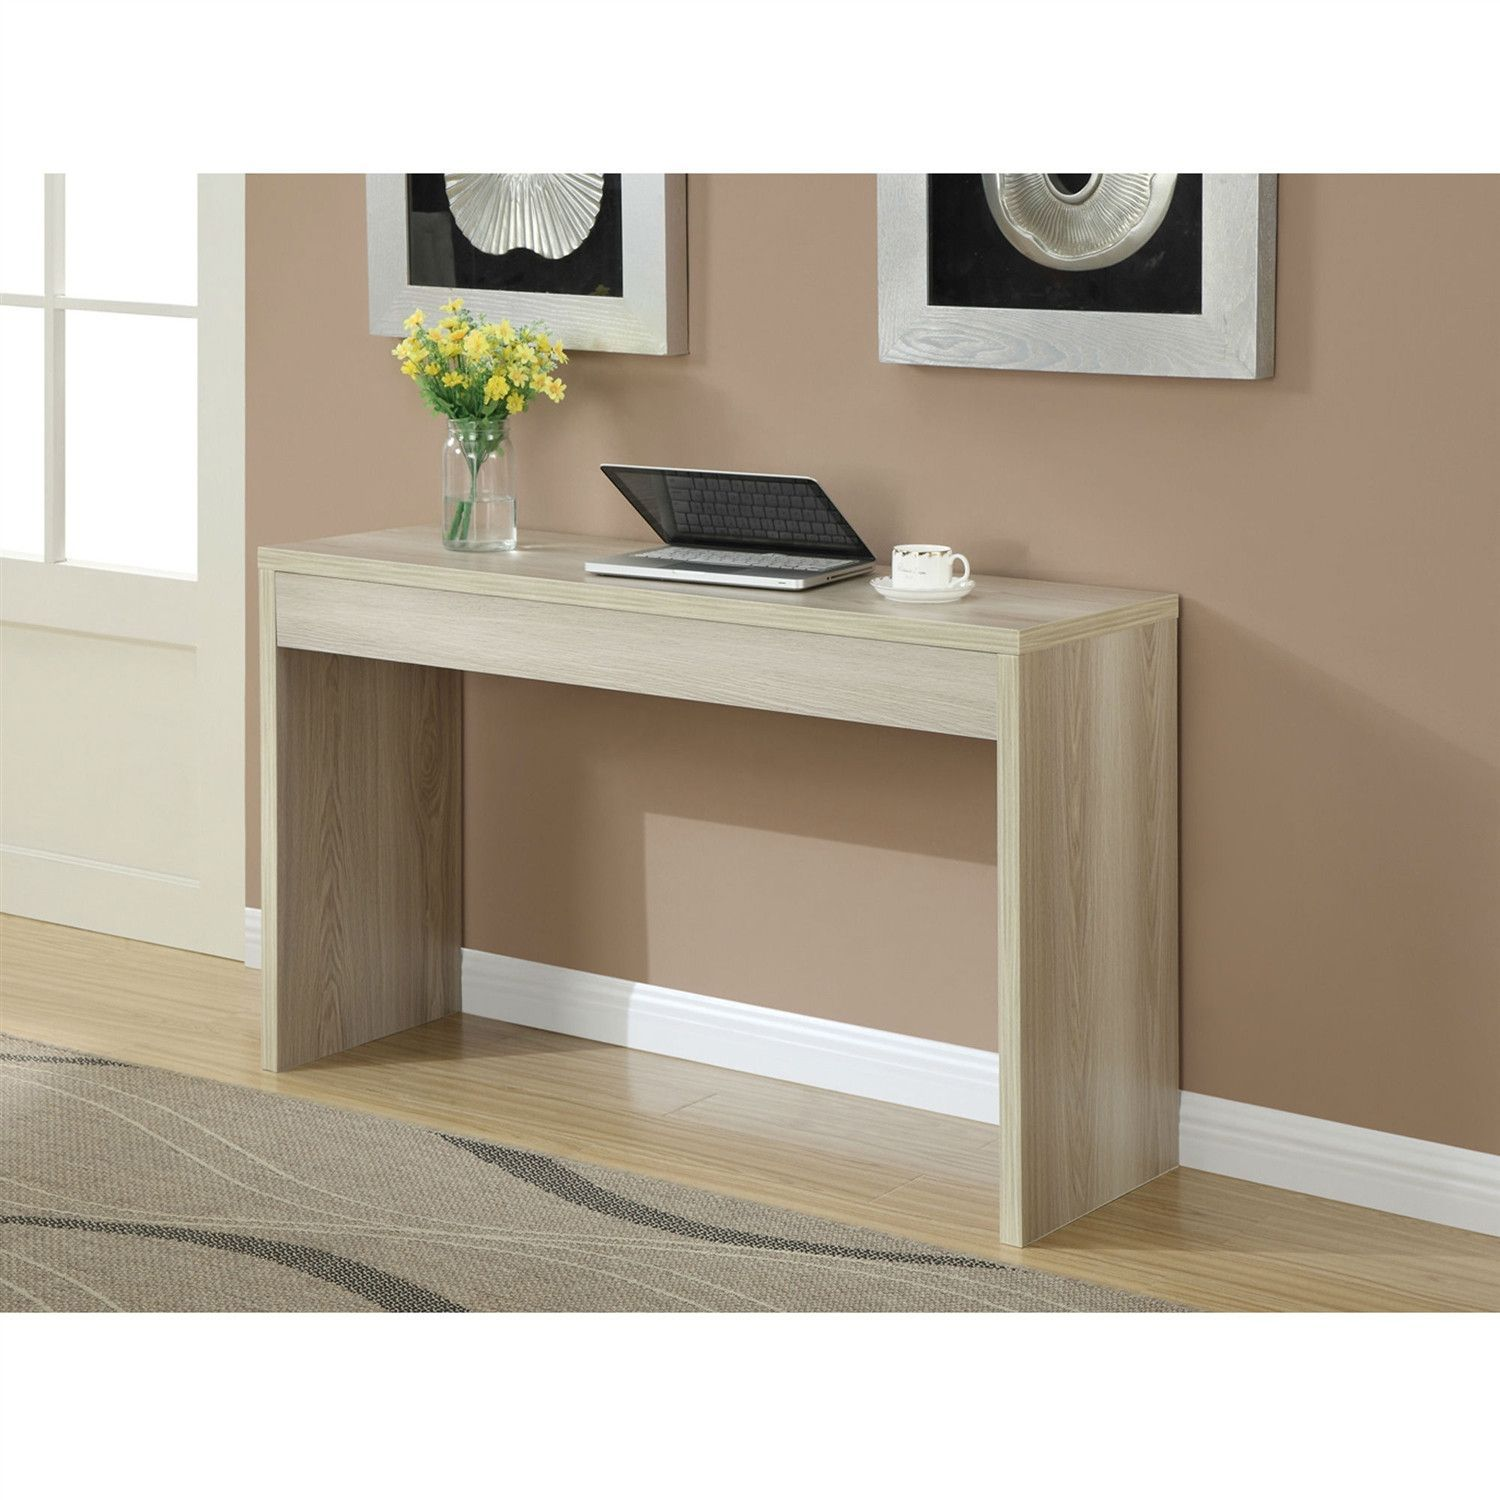 Modern White Sofa Table Sitting Room Sets Contemporary Console In Weathered